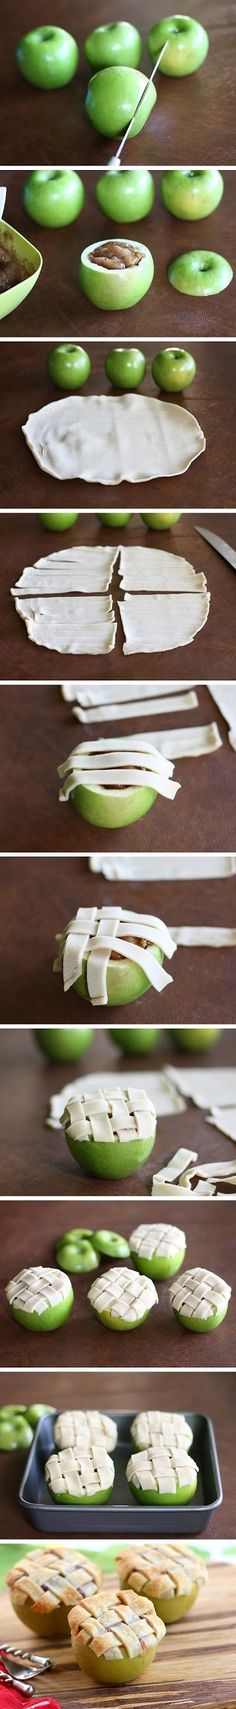 Apple Lattice Pies